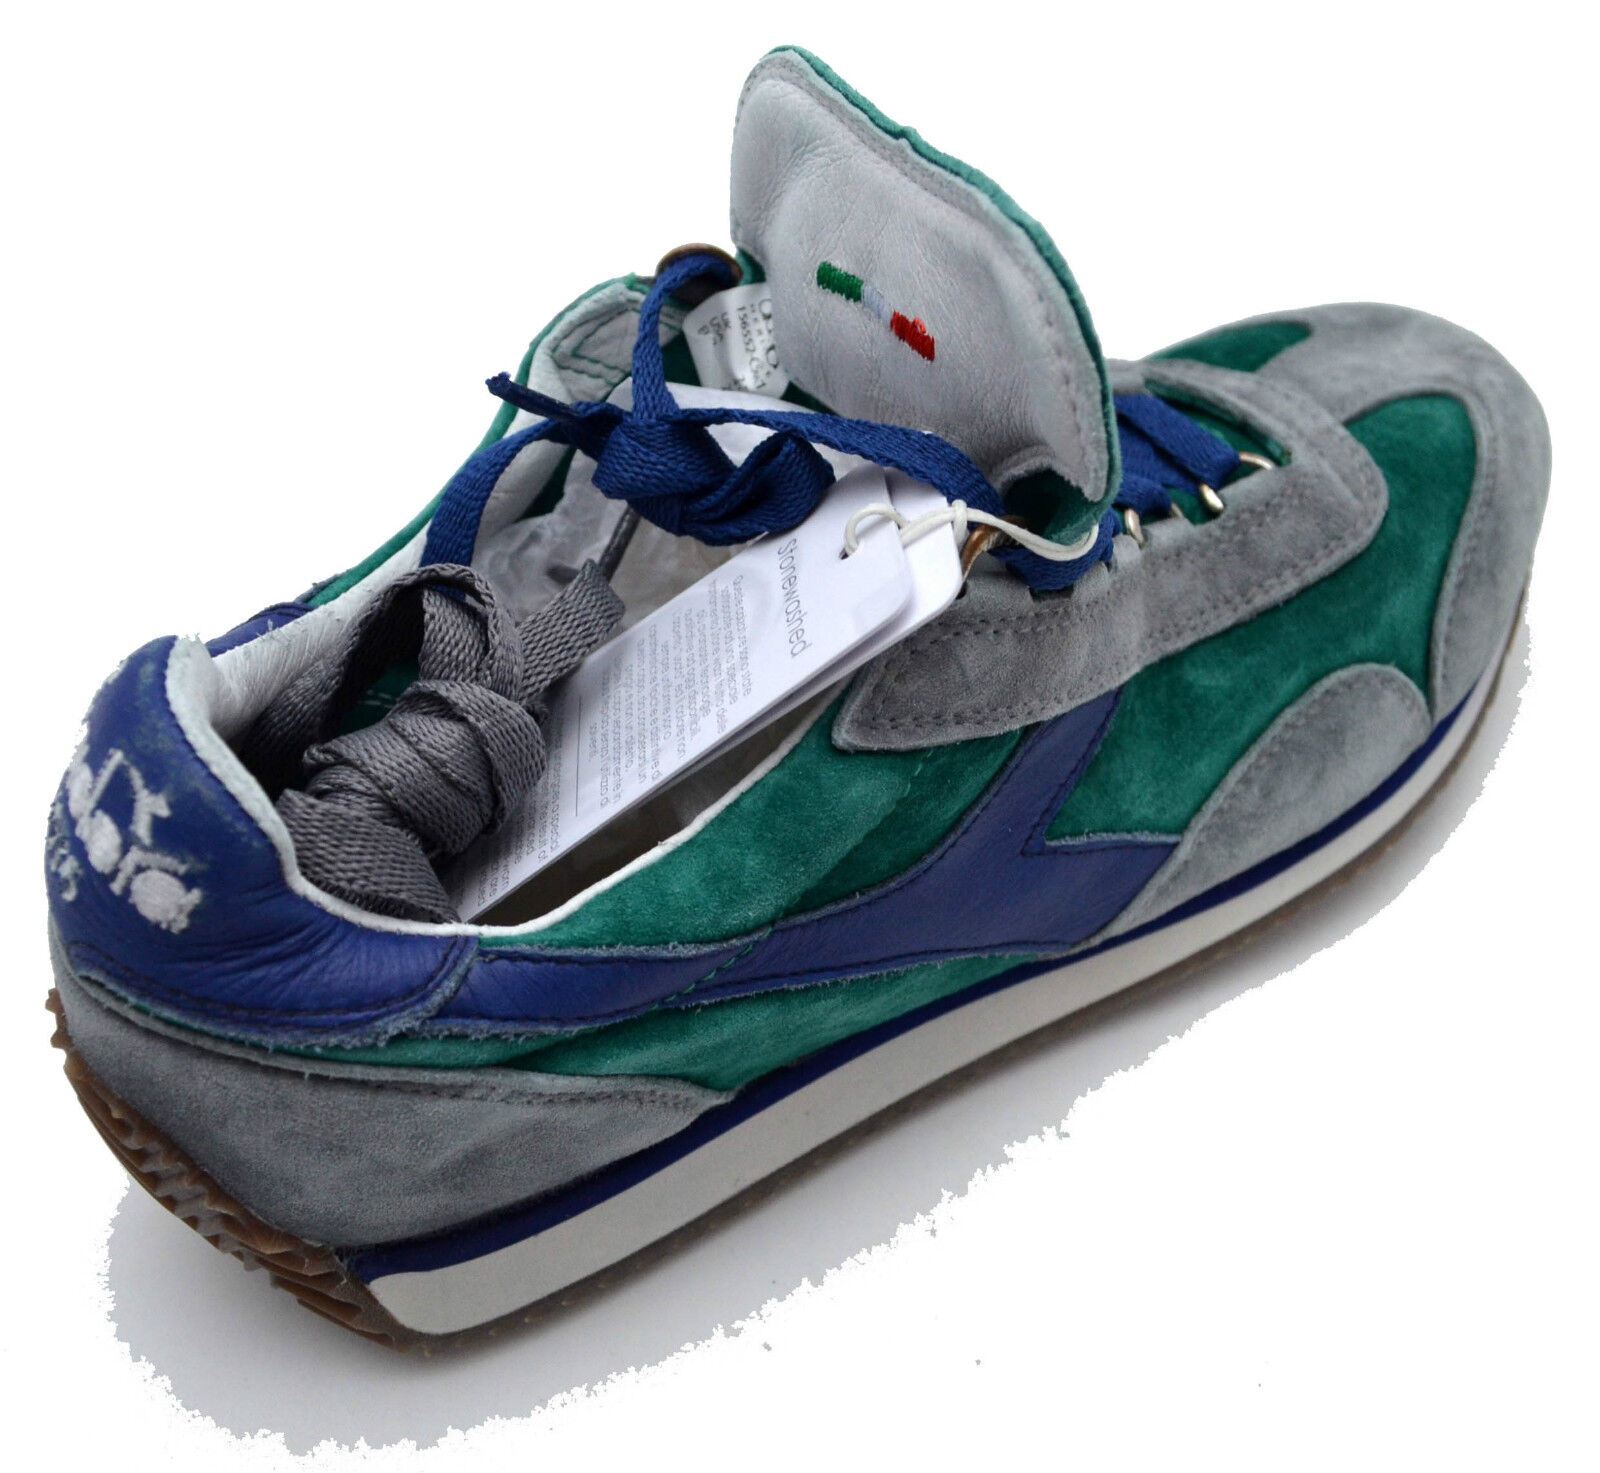 Diadora Heritage scarpe sneakers Pelle Pelle Pelle shoes Donna Women Uomo Equipe Stone wash a63128